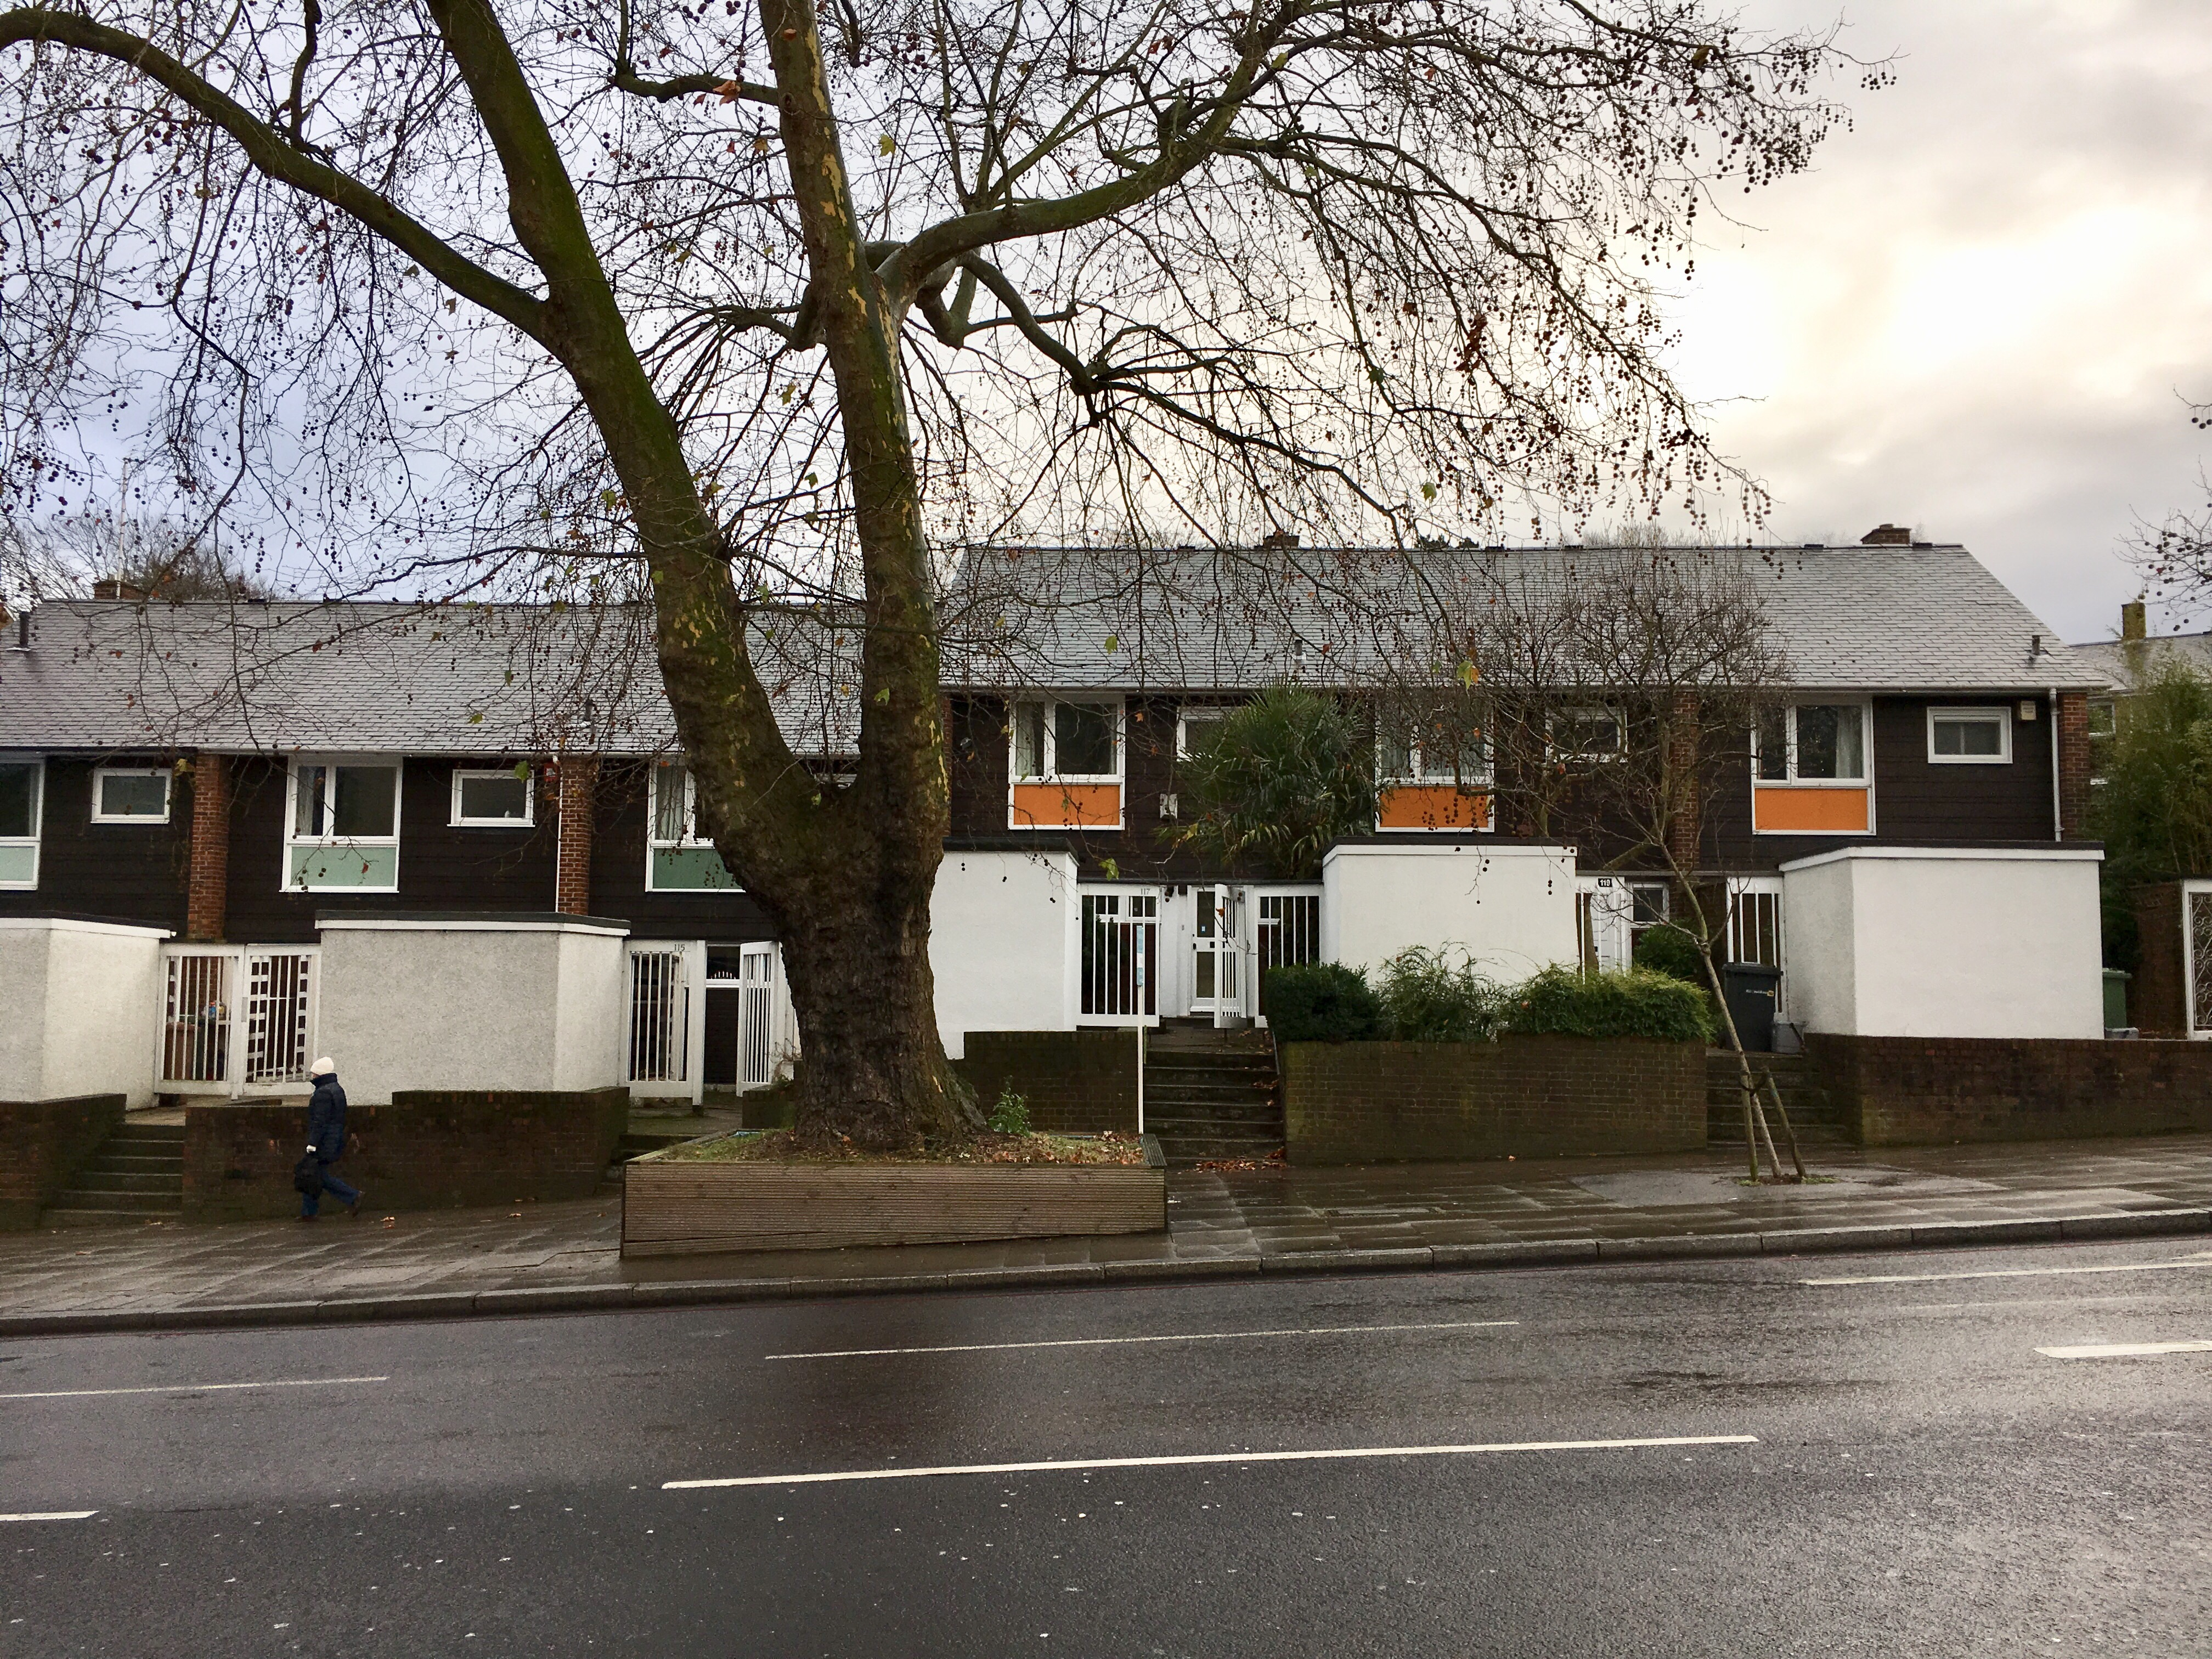 Having Passed This Row Of Houses A Couple Of Times, I Thought They Were  Interesting Looking With Their Funny Boxed In Front Gardens And Brightly  Coloured ...